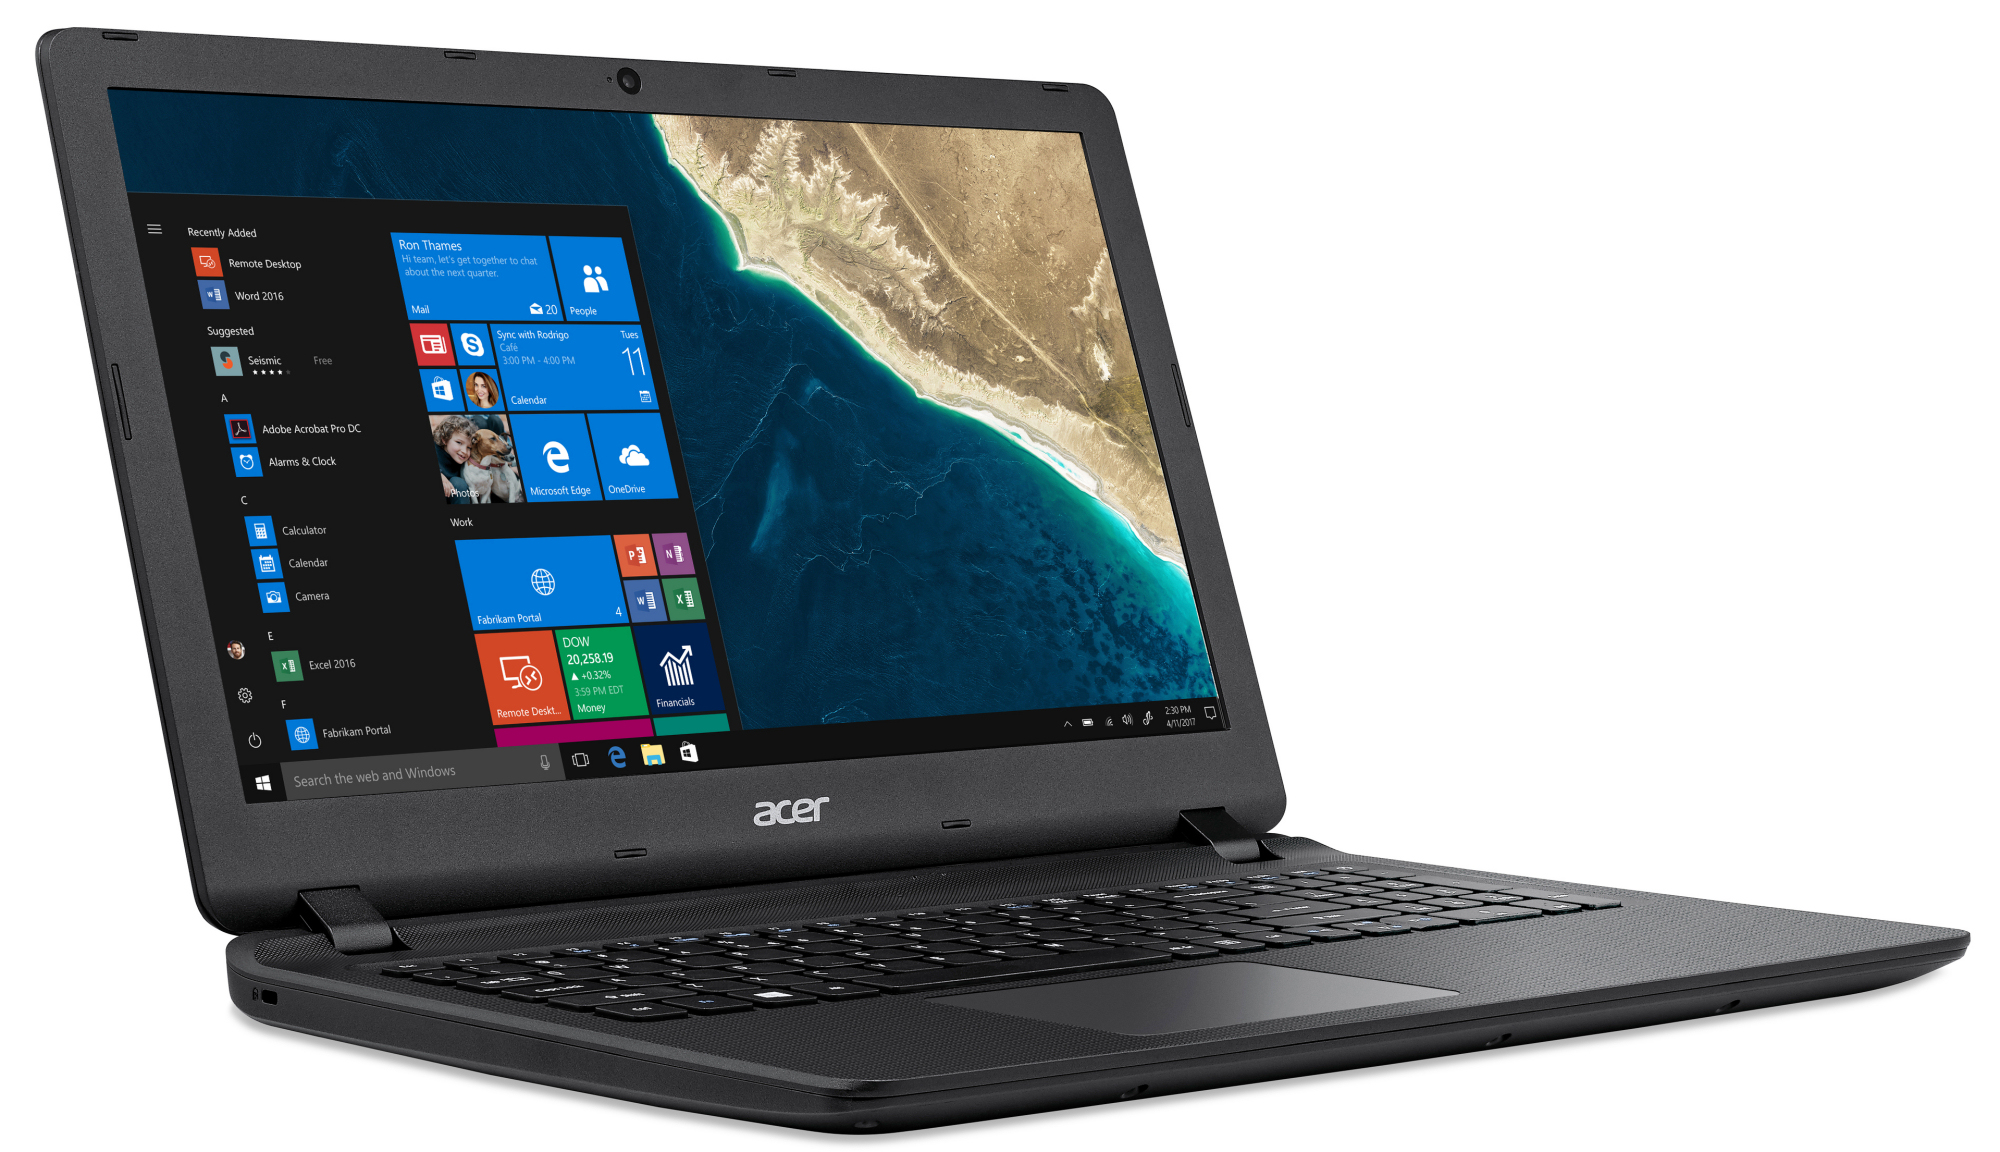 Acer Extensa 5510 Notebook Intel Display Windows 8 Driver Download